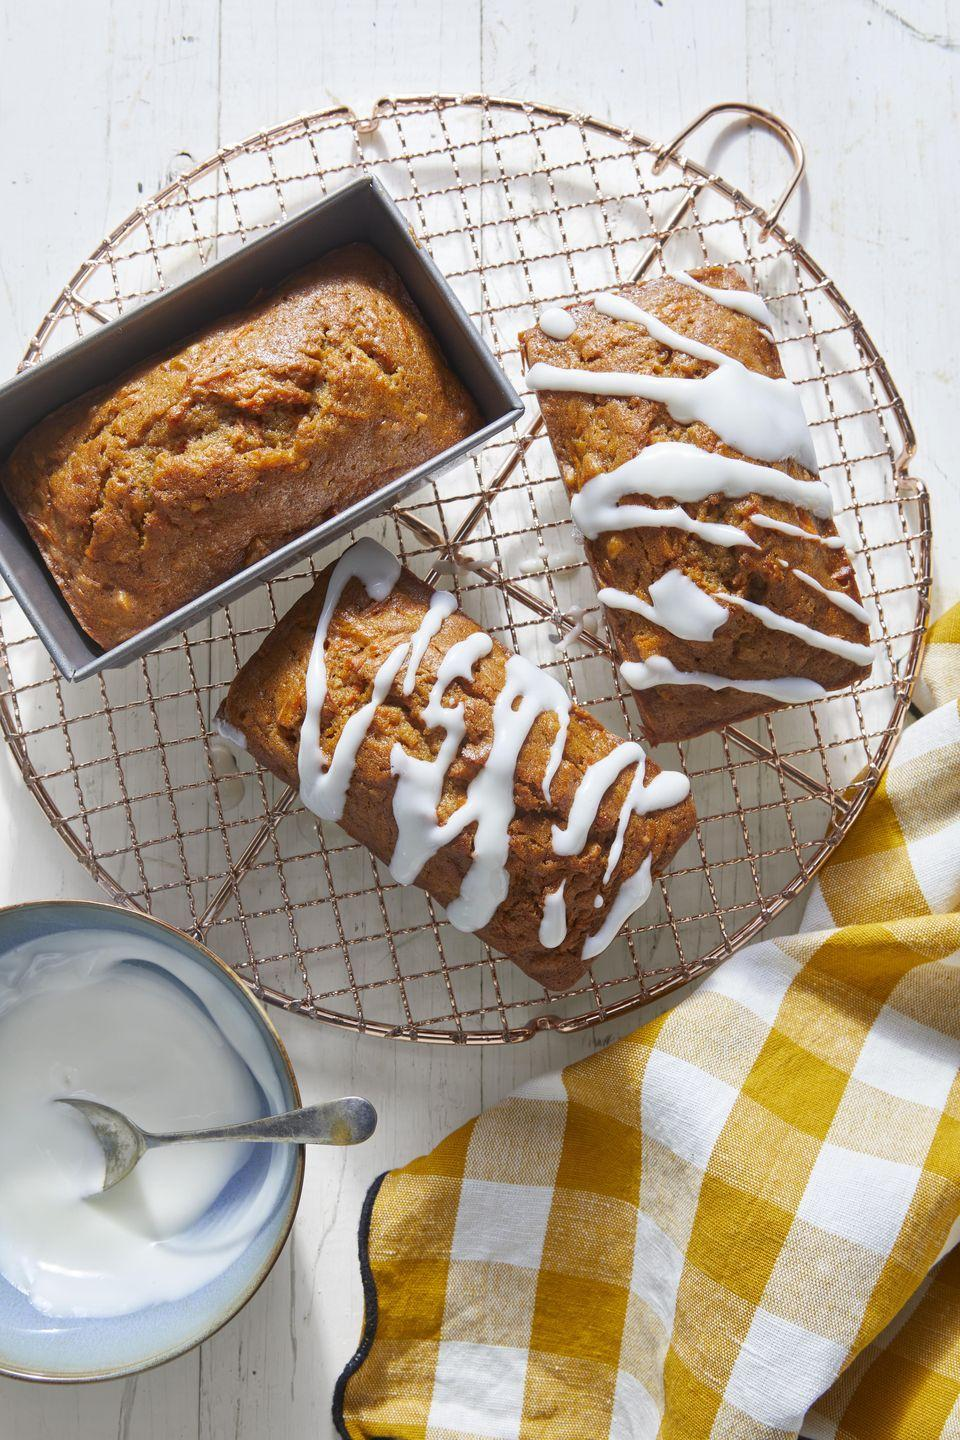 """<p>Know any carrot cake lovers? Make this bread in mini pans and it's perfect for gifting. Or make it in one large pan for yourself.</p><p><strong><a href=""""https://www.countryliving.com/food-drinks/a34946865/carrot-nut-bread-with-sour-cream-glaze-recipe/"""" rel=""""nofollow noopener"""" target=""""_blank"""" data-ylk=""""slk:Get the recipe"""" class=""""link rapid-noclick-resp"""">Get the recipe</a>.</strong></p><p><a class=""""link rapid-noclick-resp"""" href=""""https://www.amazon.com/Chicago-Metallic-Commercial-Non-Stick-Mini/dp/B003YKGQVK/?tag=syn-yahoo-20&ascsubtag=%5Bartid%7C10050.g.35246097%5Bsrc%7Cyahoo-us"""" rel=""""nofollow noopener"""" target=""""_blank"""" data-ylk=""""slk:SHOP MINI LOAF PANS"""">SHOP MINI LOAF PANS</a></p>"""